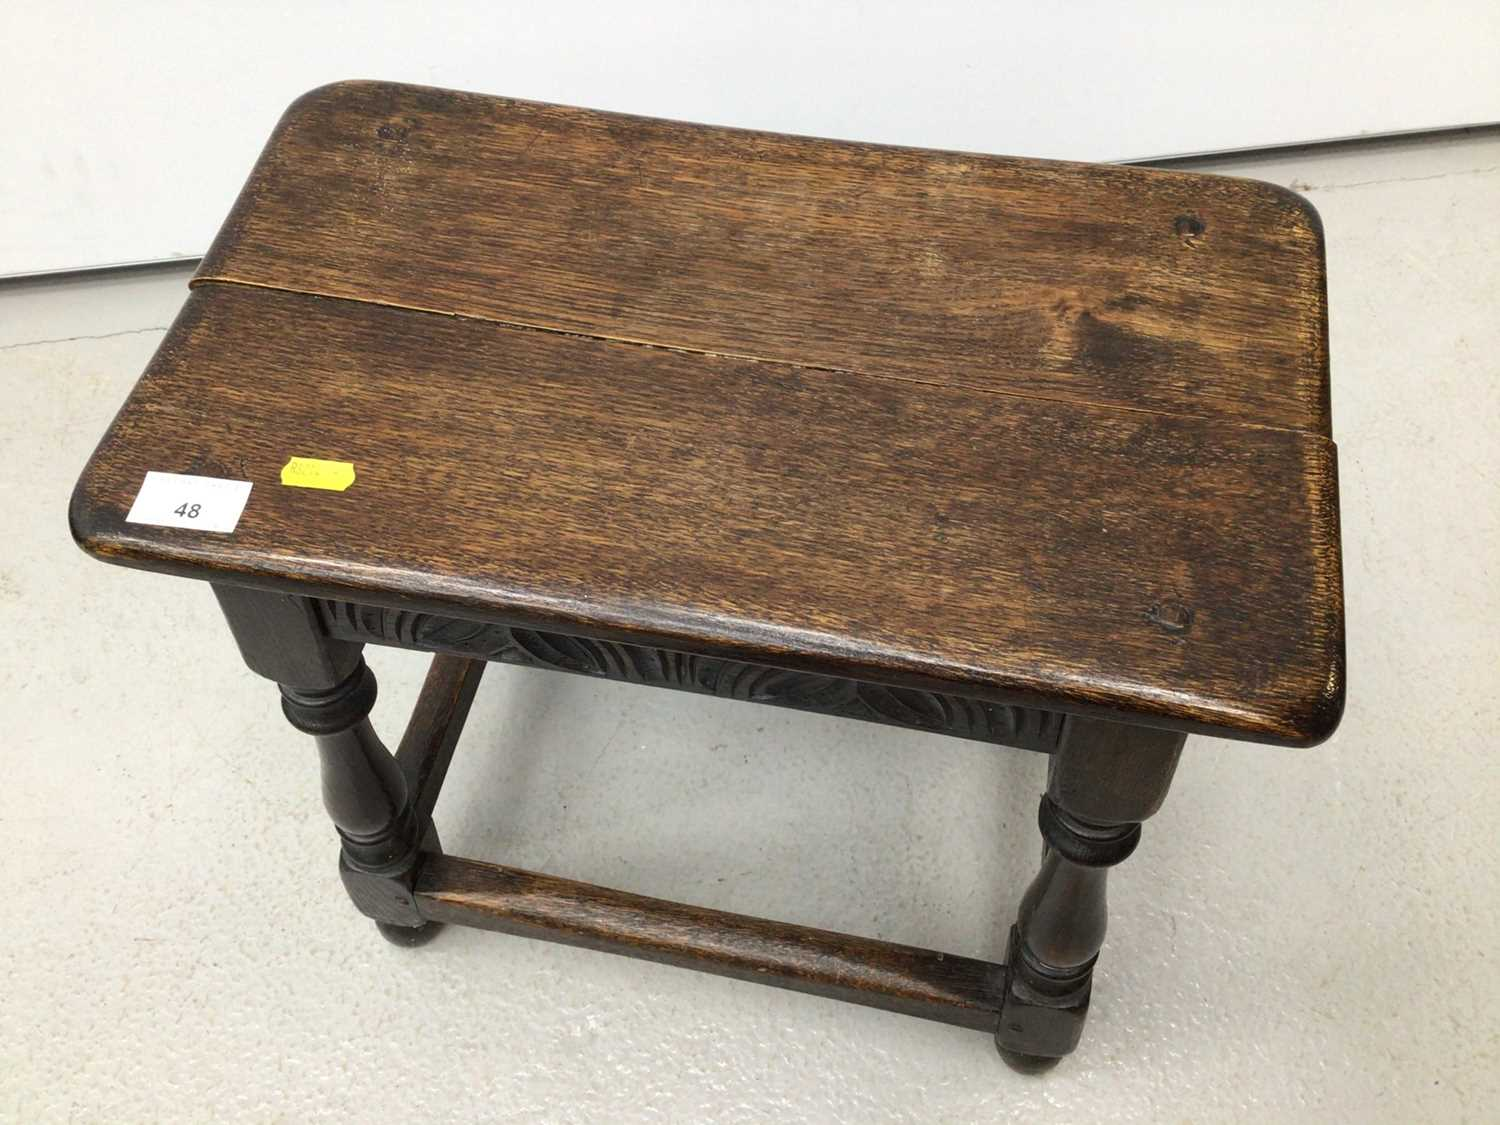 Carved oak joint stool on turned and block legs joined by stretchers, 44cm wide x 25cm deep x 45.5cm - Image 3 of 4